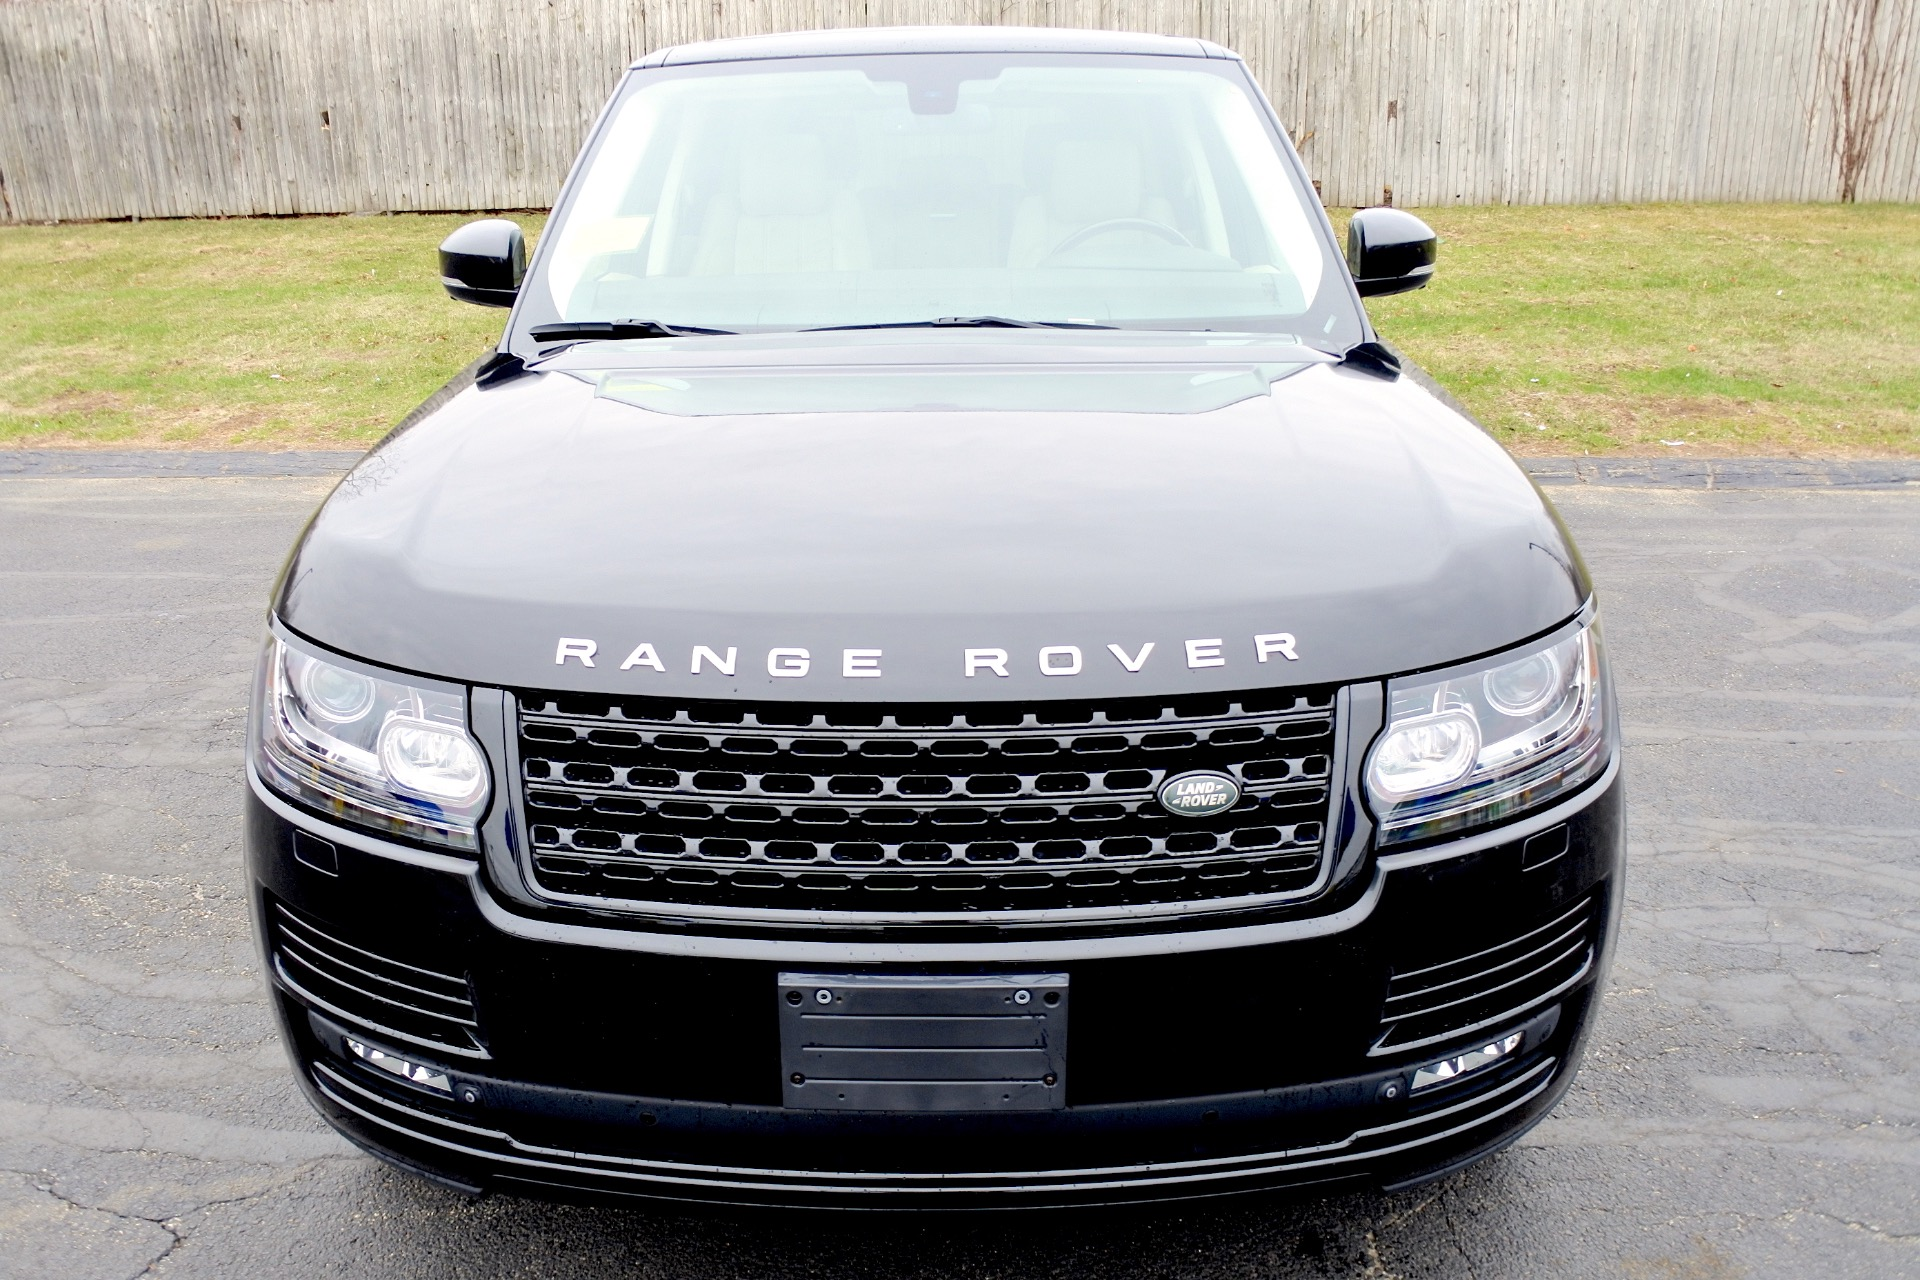 Used 2015 Land Rover Range Rover HSE Used 2015 Land Rover Range Rover HSE for sale  at Metro West Motorcars LLC in Shrewsbury MA 8